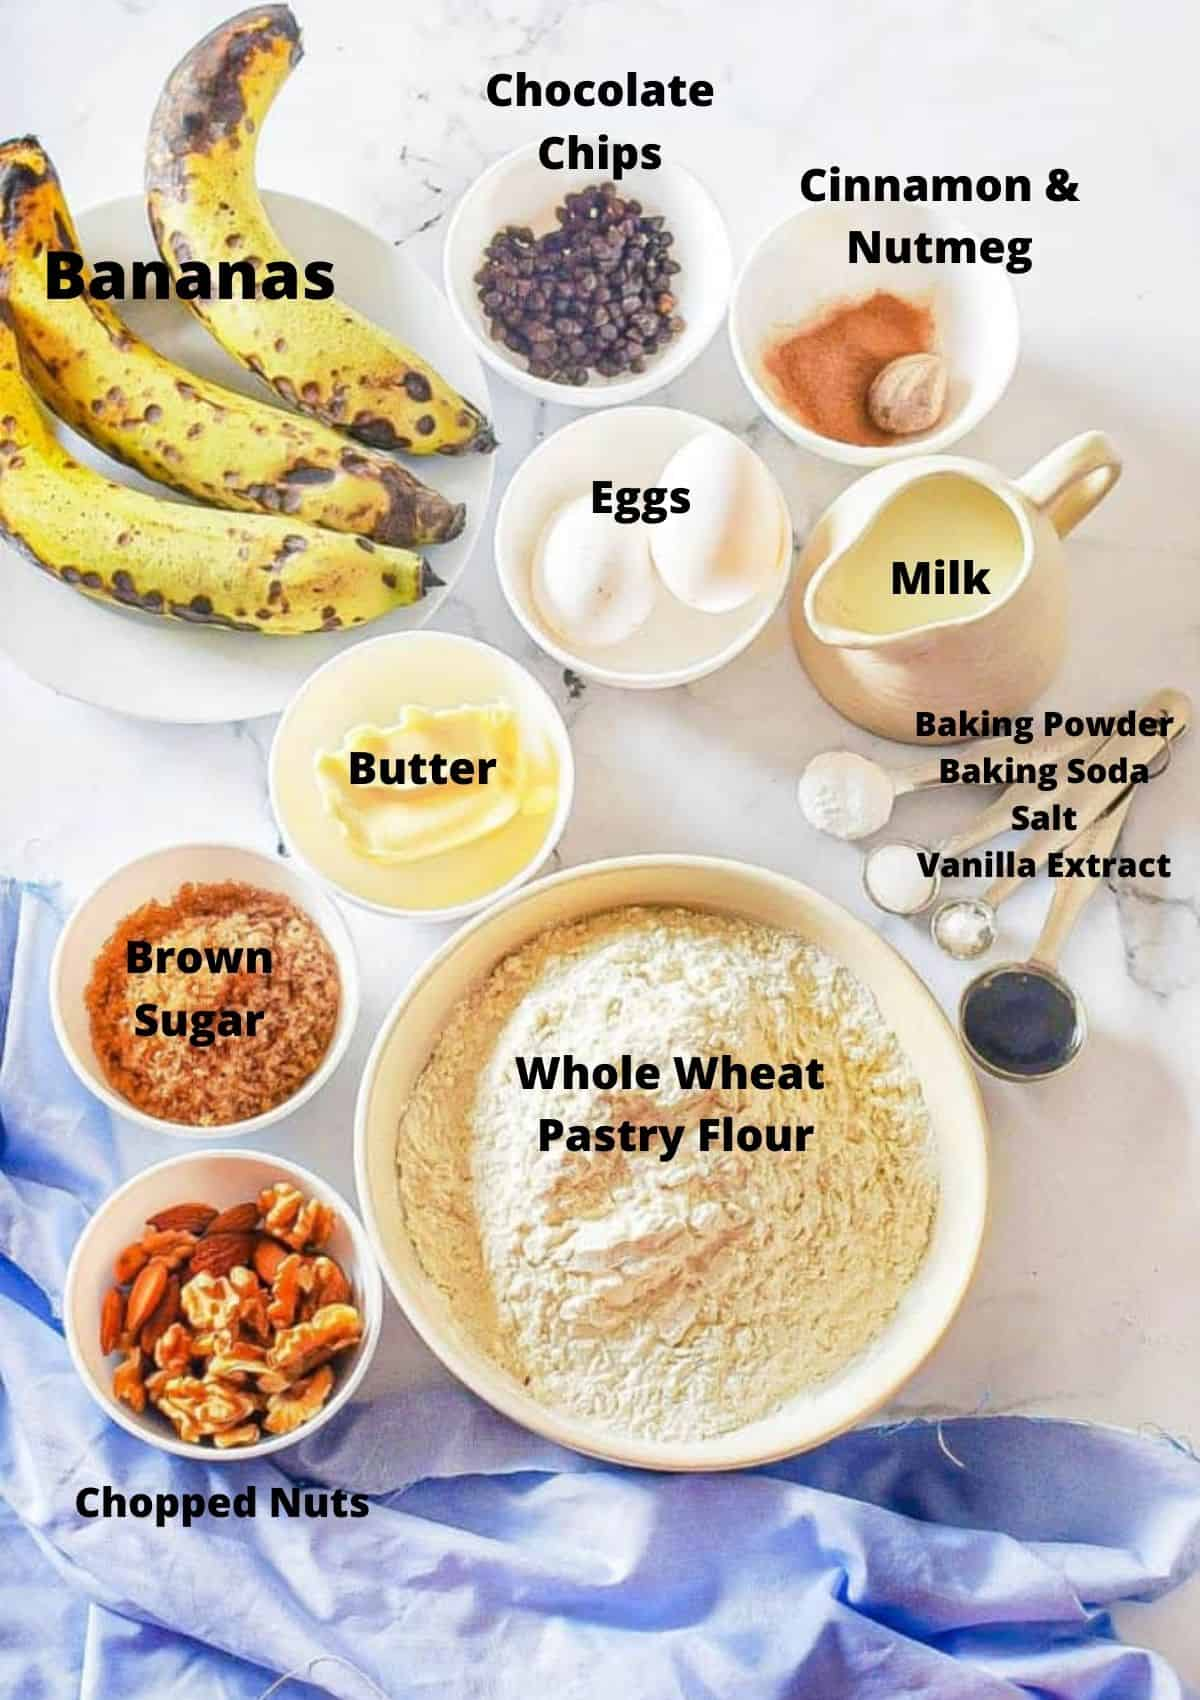 Ingredients for chocolate chip banana muffins on counter top: bananas, eggs, butter, spices, milk, baking powder, baking soda, salt, vanilla, whole wheat pastry flour, chopped nuts, and brown sugar.